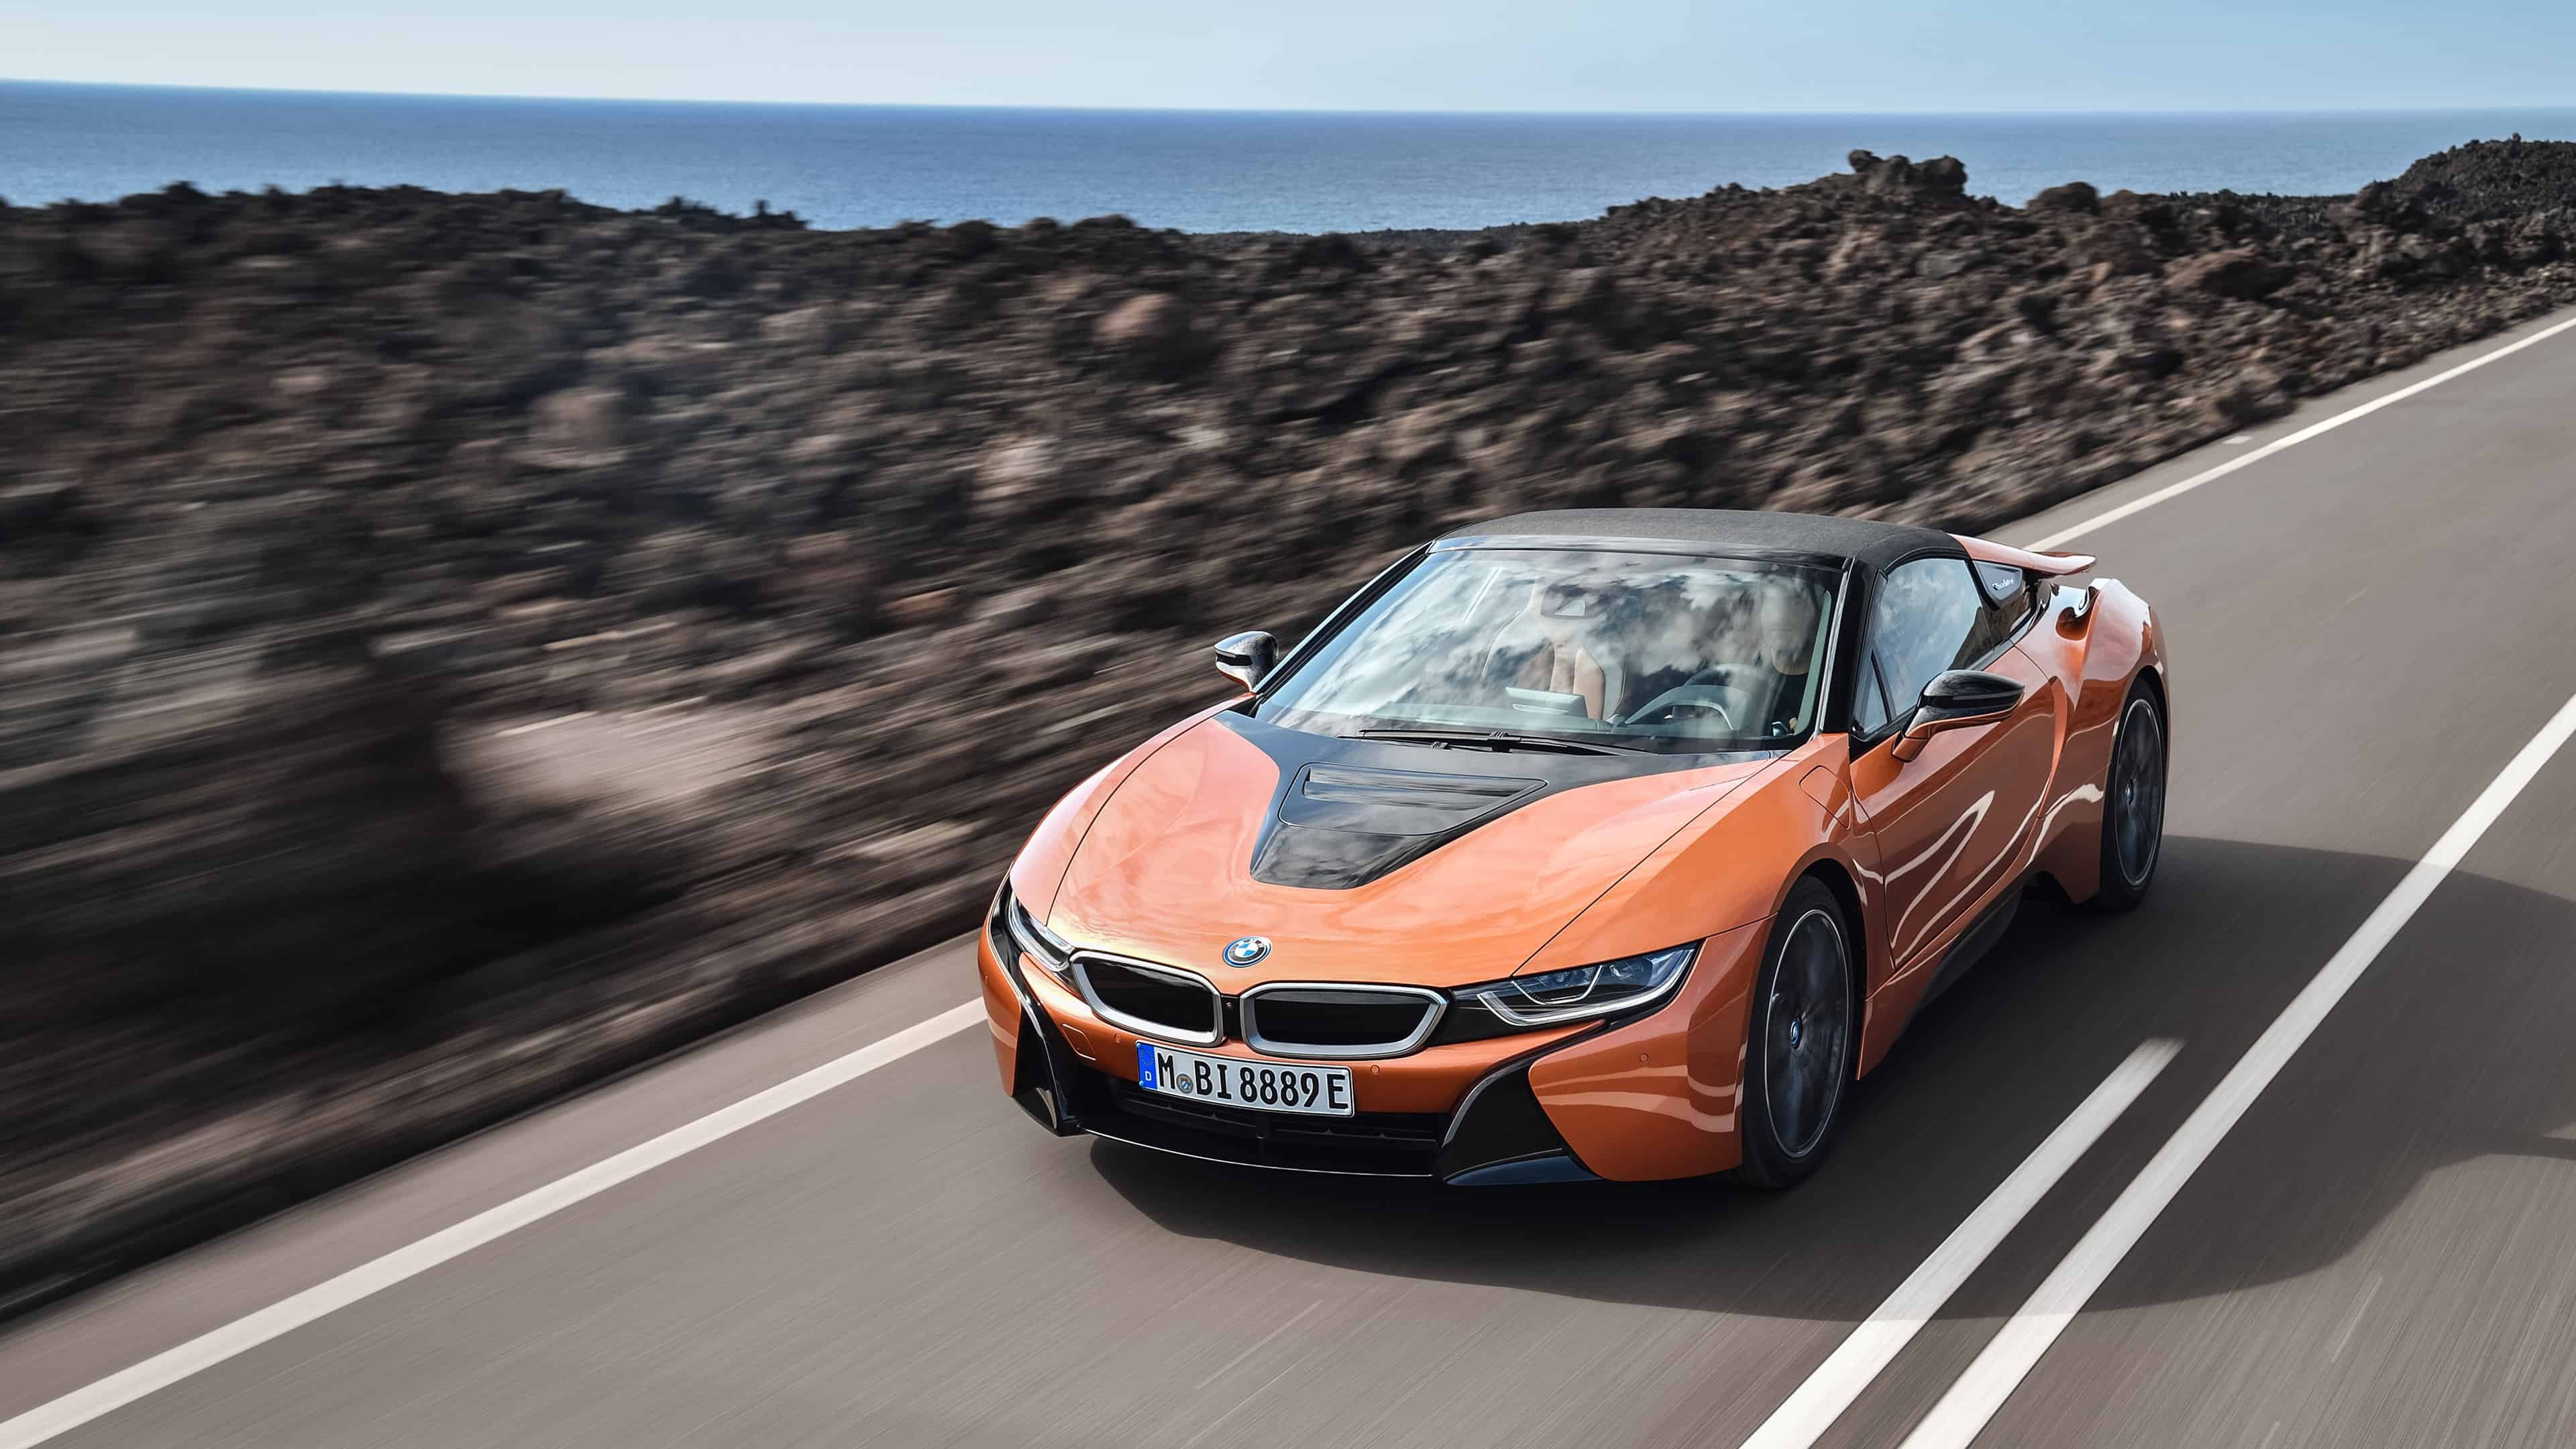 bmw i8 roadster uhd 4k wallpaper